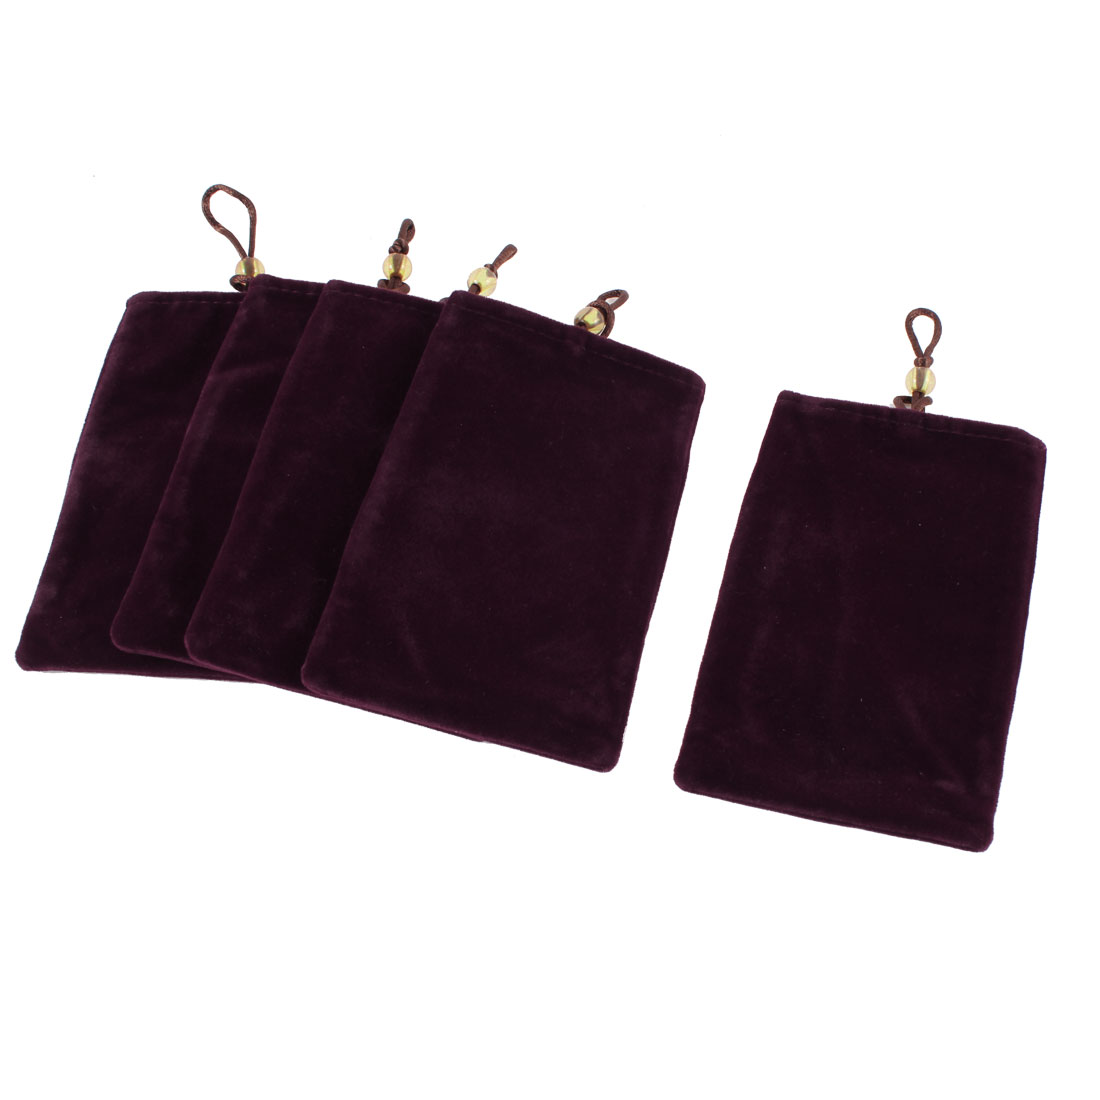 5 Pcs Dark Burgundy Velvet Universal Pouch Pocket Cover for Mobile Cell Phone